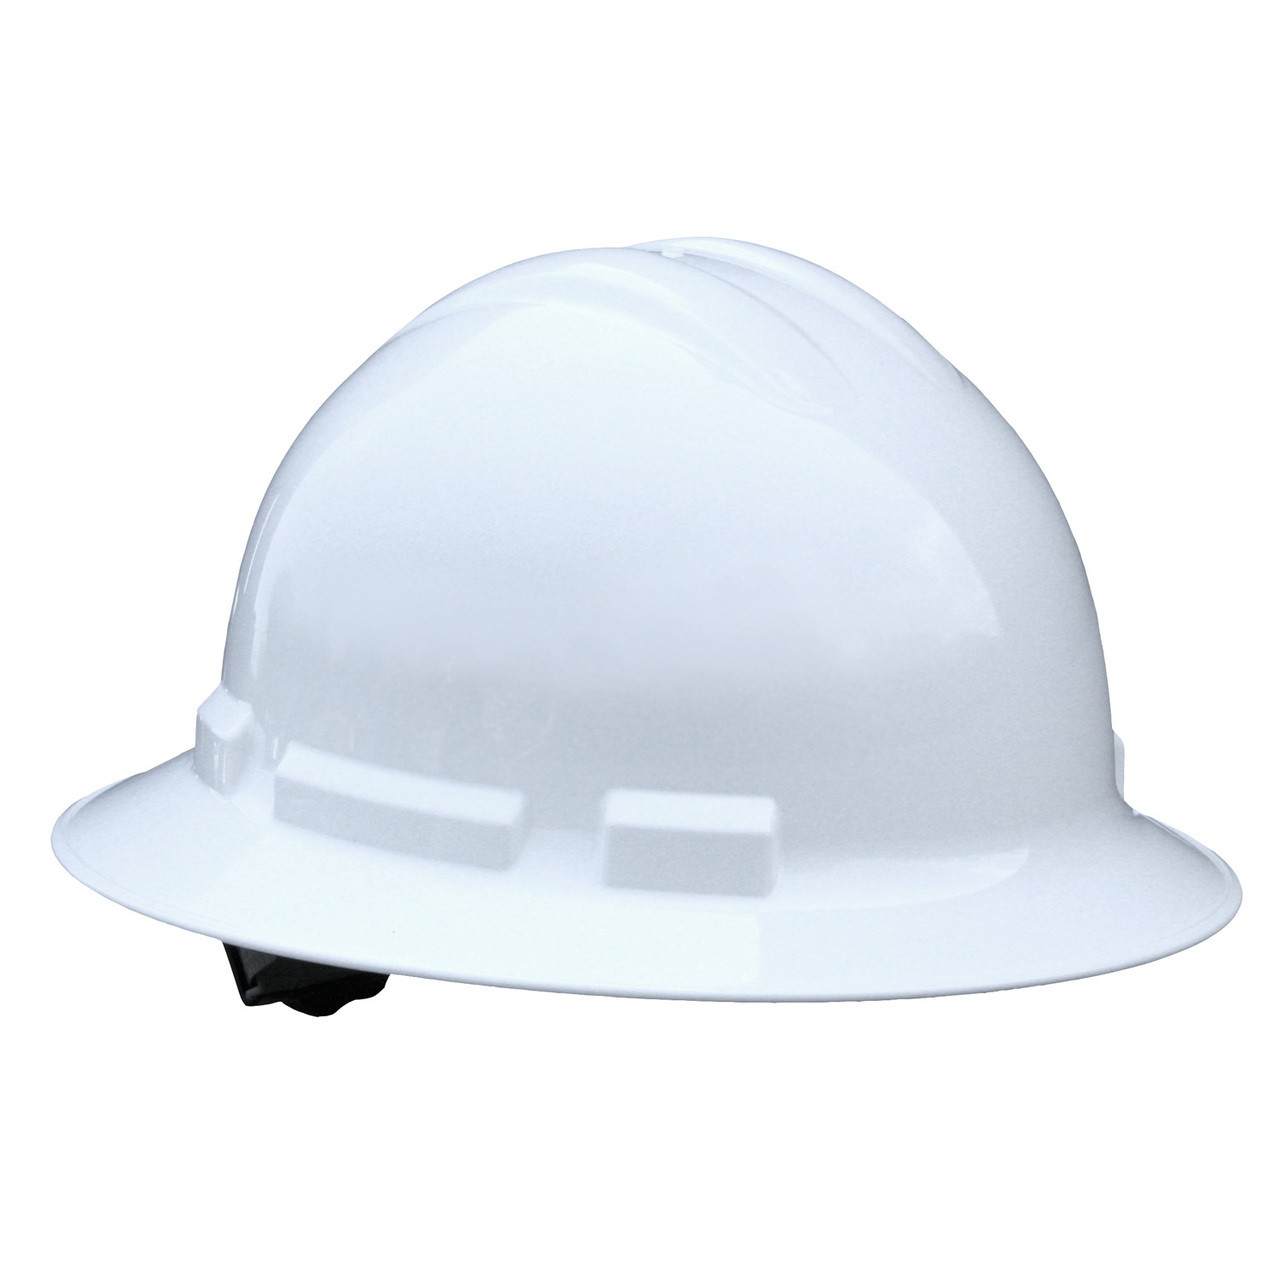 White Full Brim Hard Hat with Ratchet - Radians QHR6